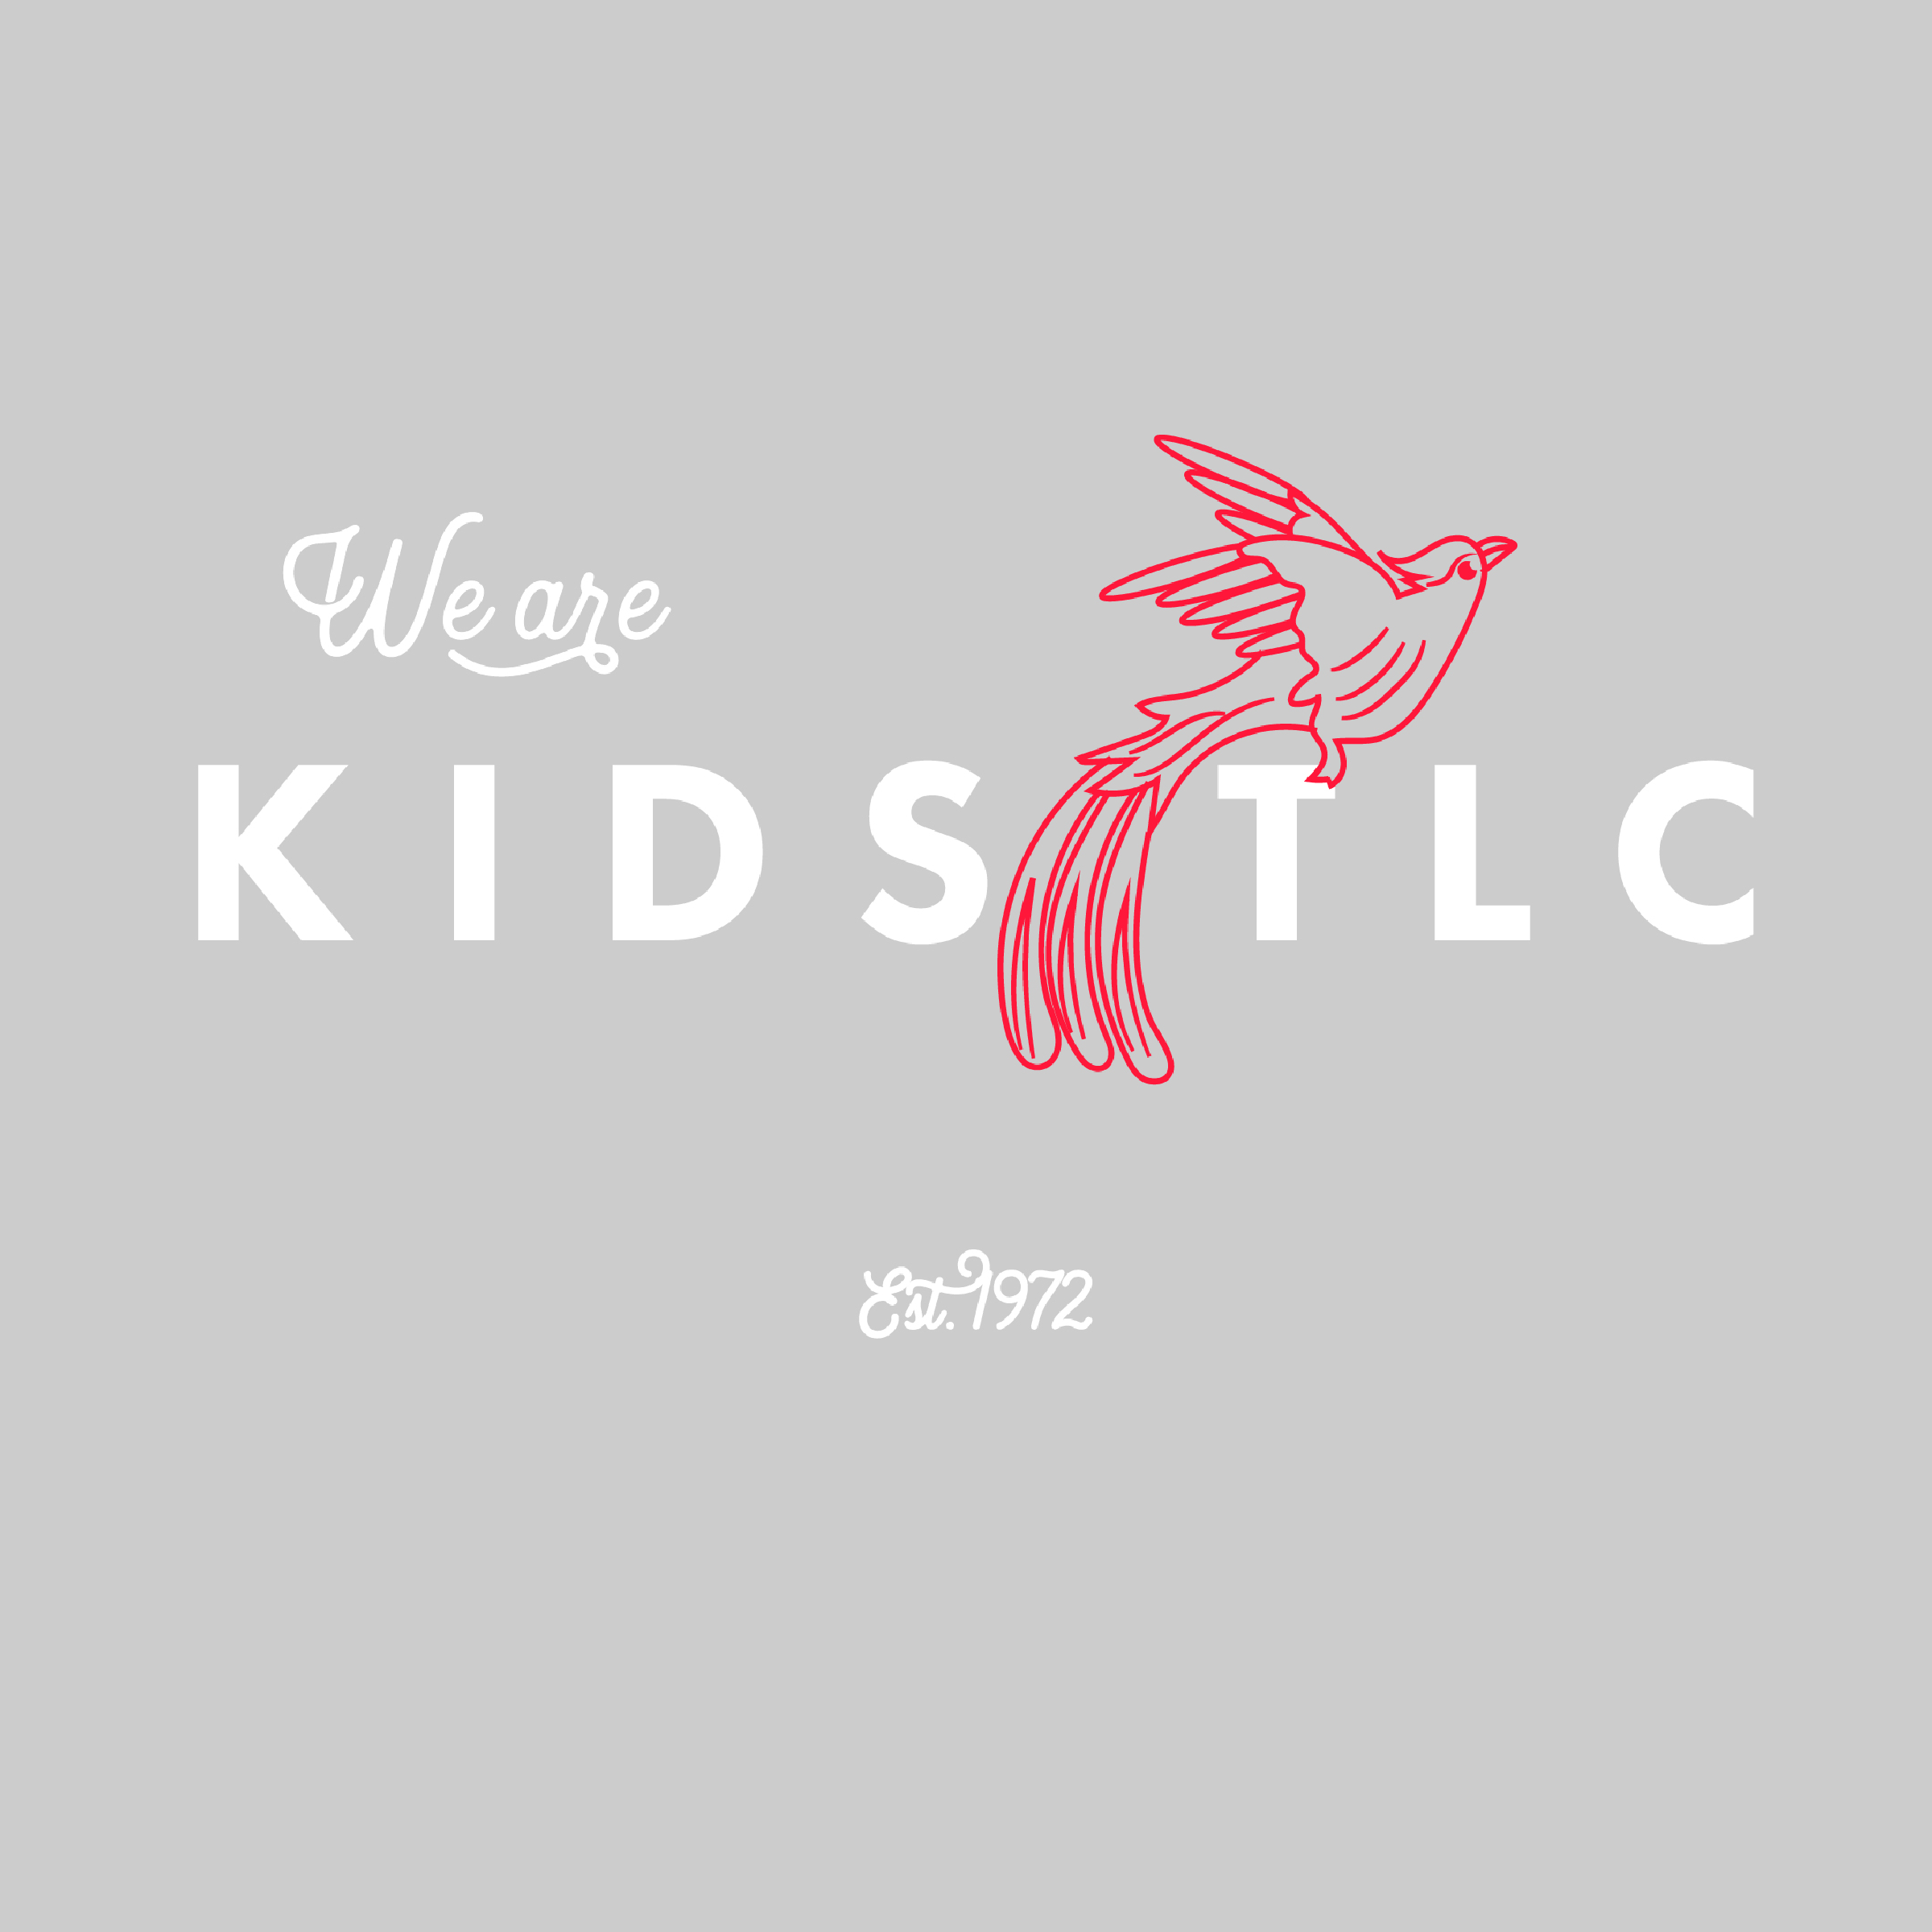 kids tlc work icon-01.png